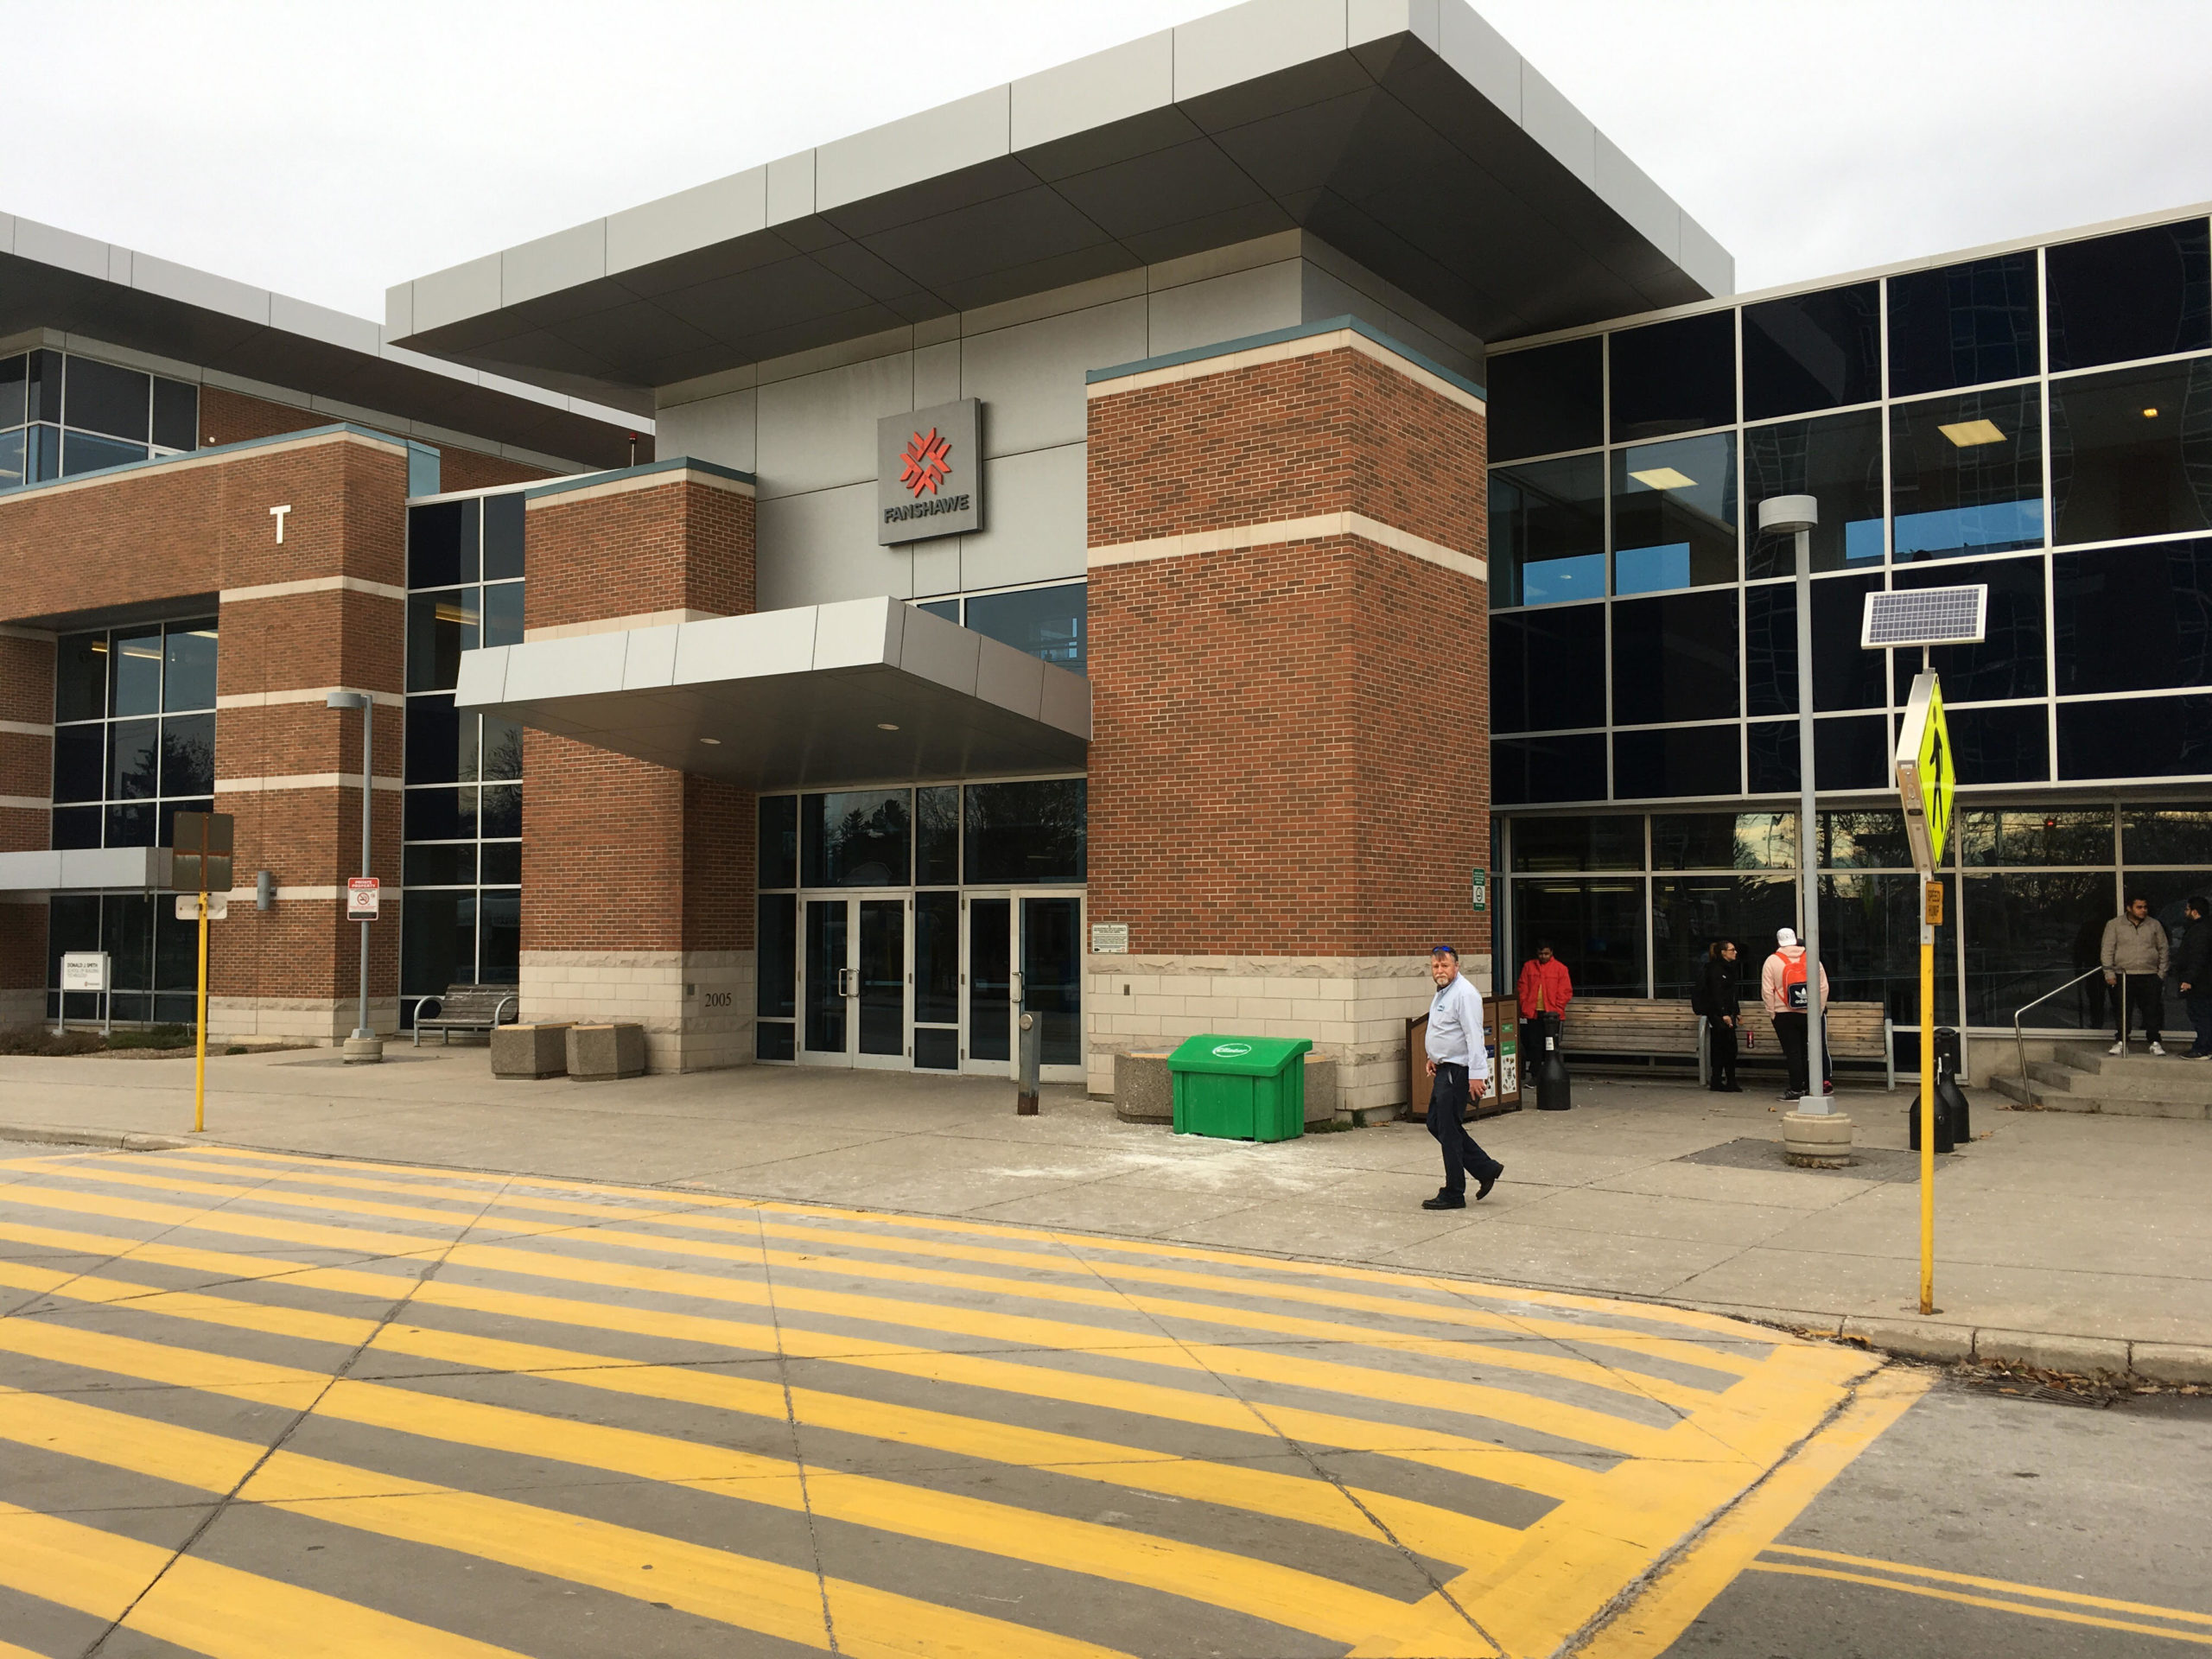 Fanshawe students concerned as they return to class following a five-week strike